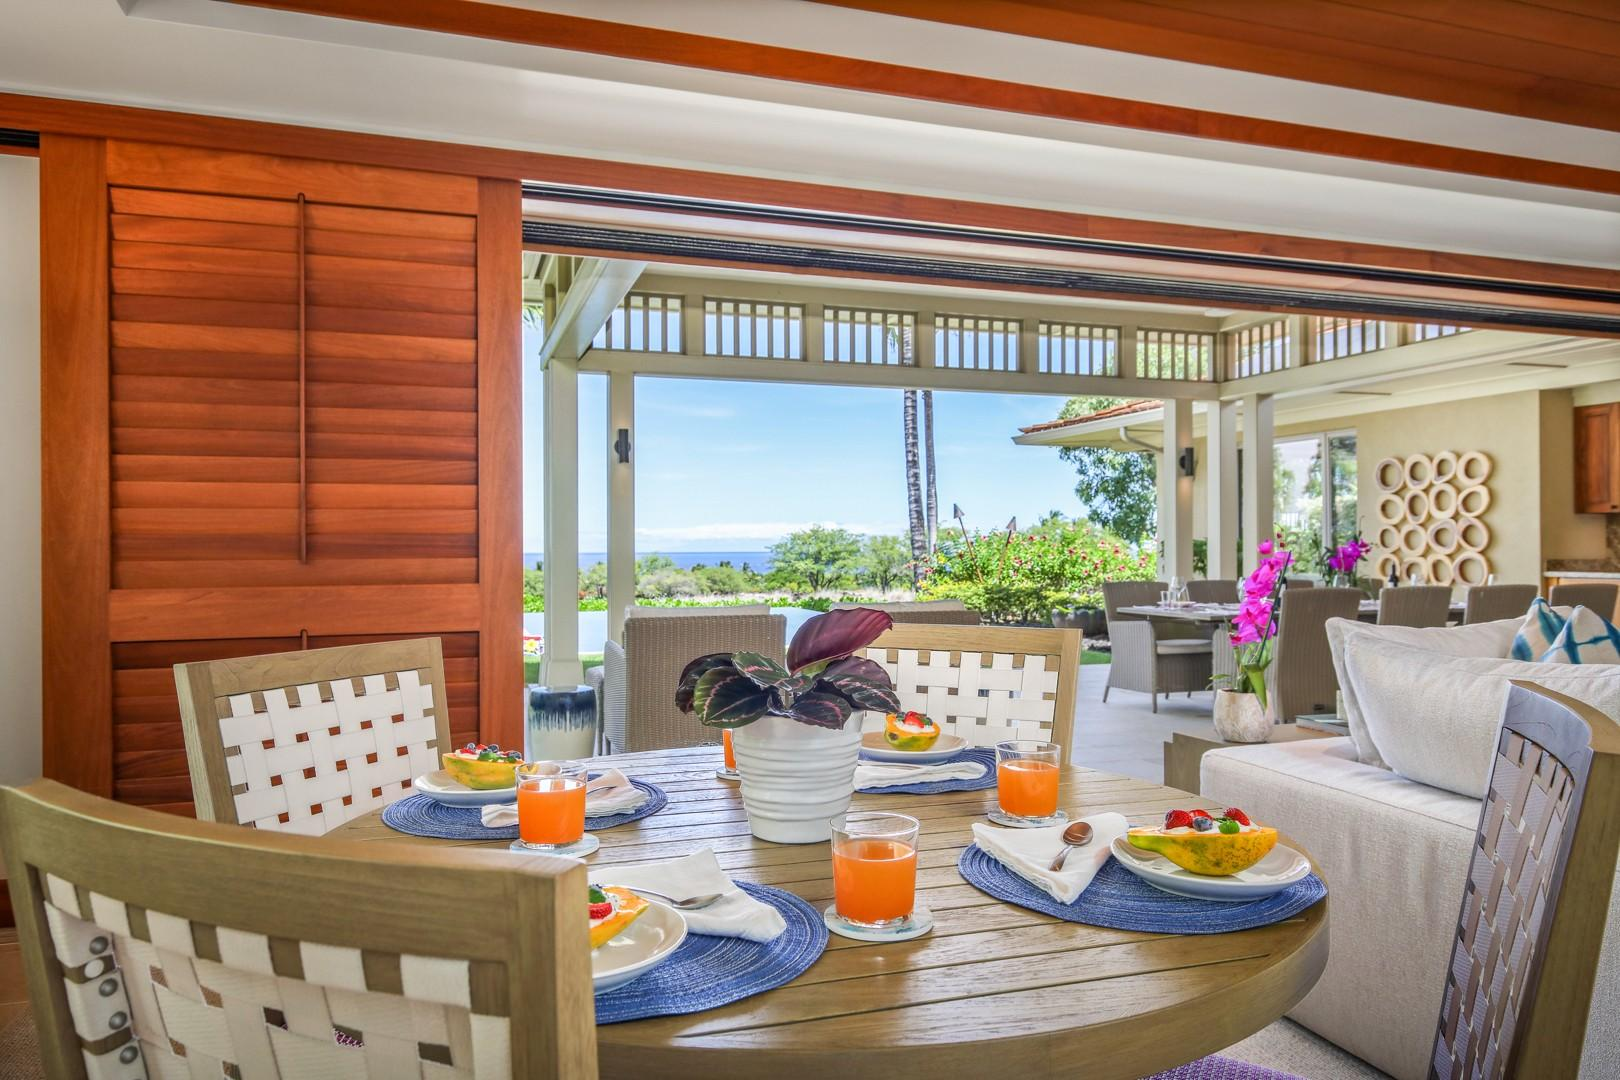 Bright and cheerful breakfast table with ocean views.